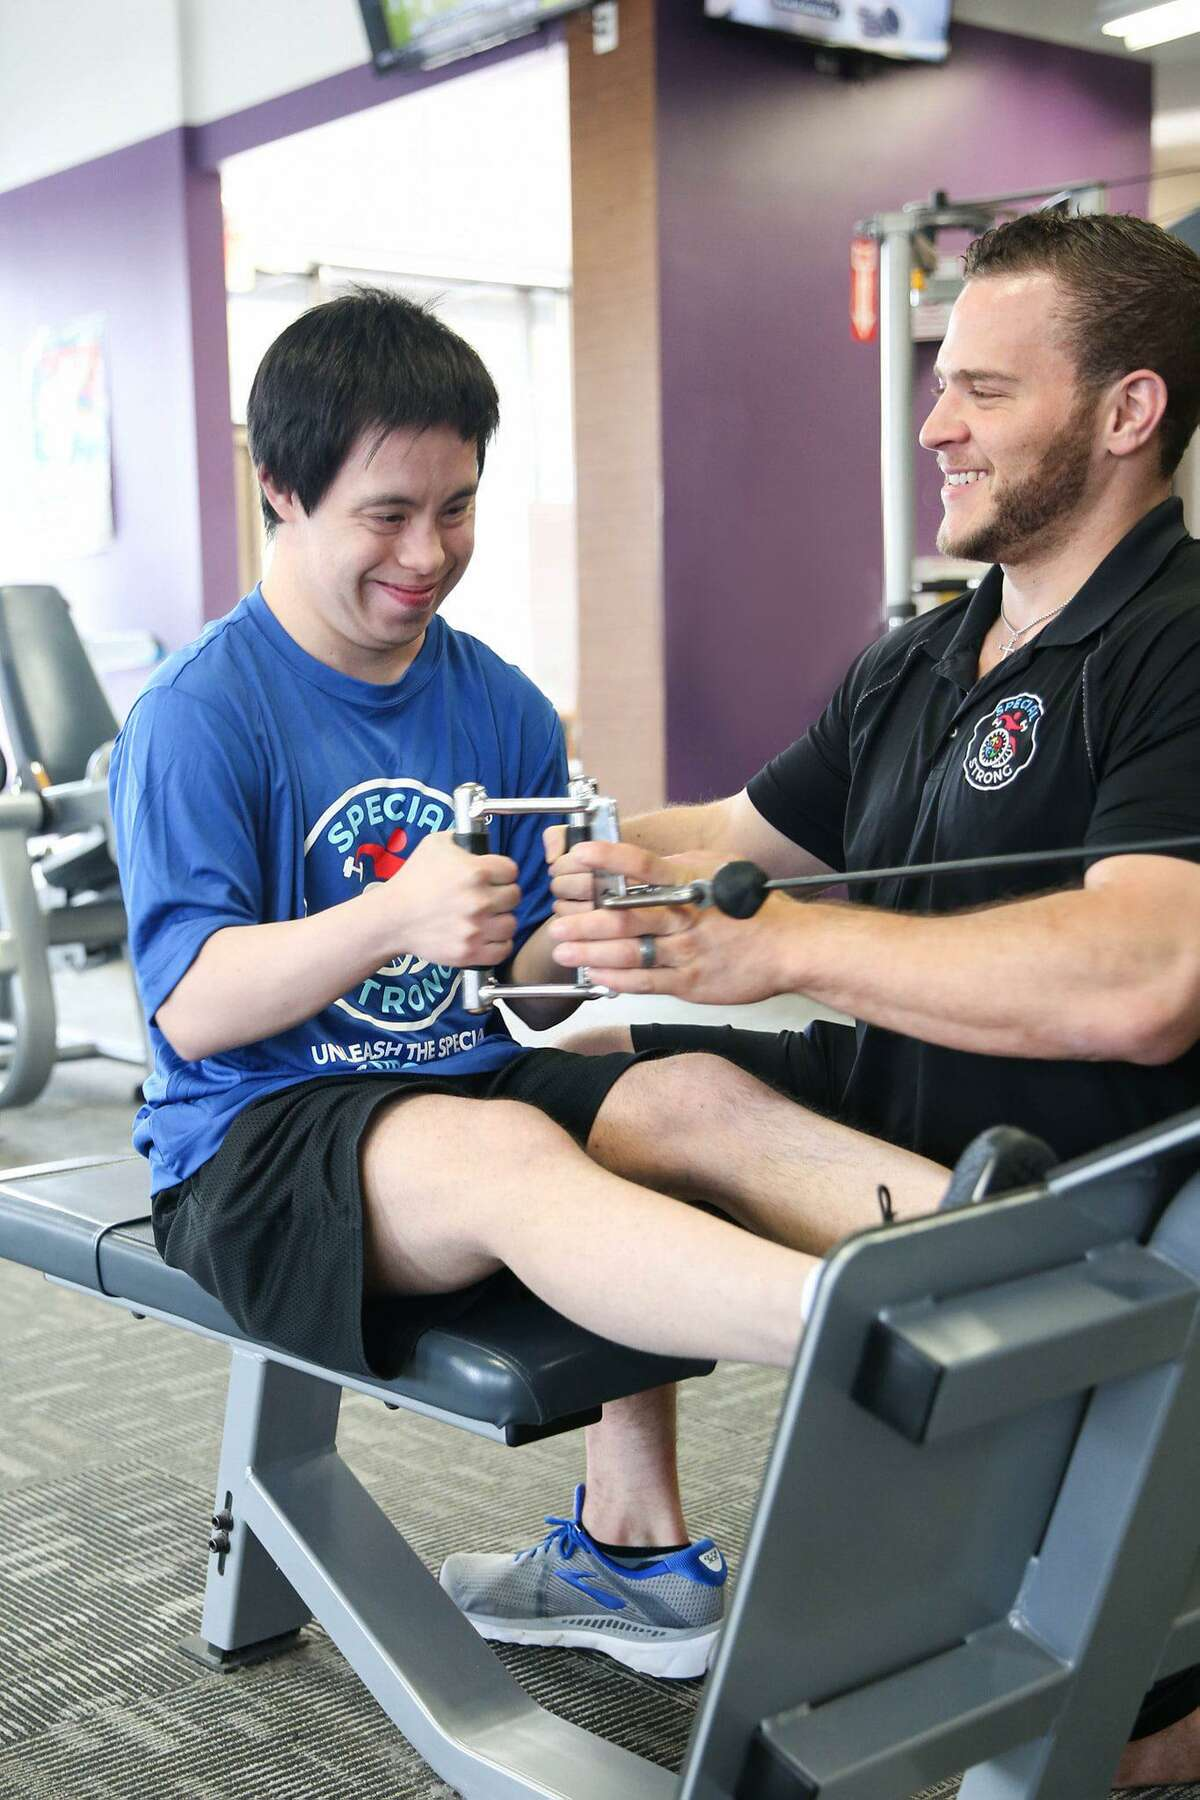 Special Strong will host a grand opening May 22 at Jumping World in League City. The event will provide a glimpse into its science-based adaptive fitness programs for children, adolescents, and adults with physical, mental and cognitive challenges.